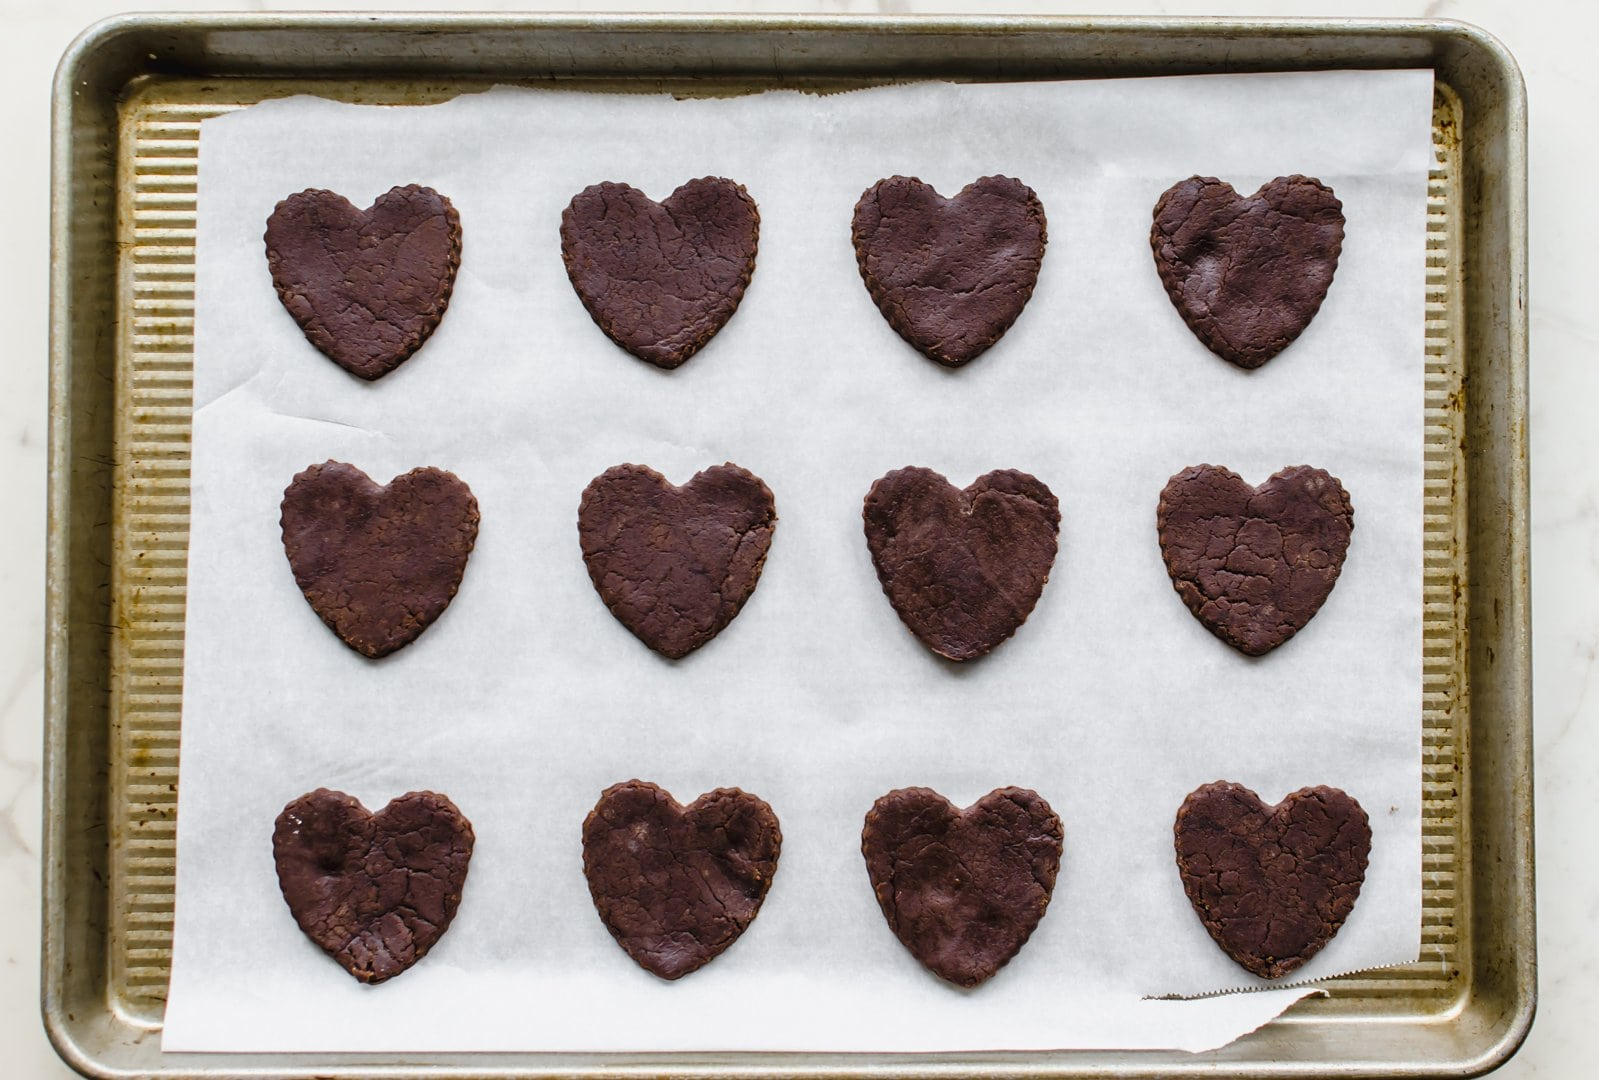 Unbaked heart-shaped chocolate cookies on a baking sheet with parchment paper.